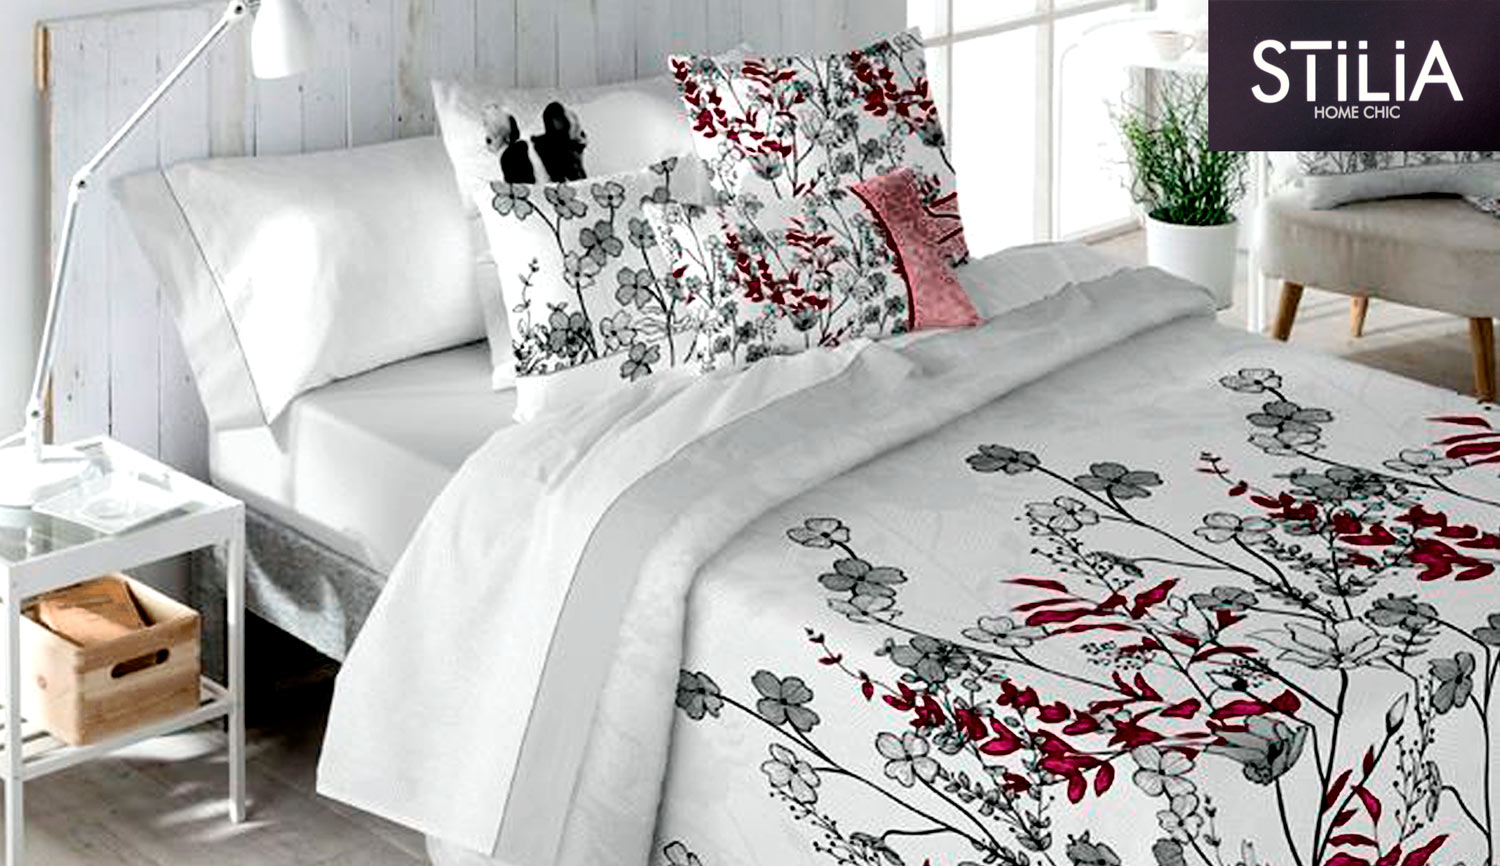 3-piece duvet cover - path geranium - STILIA